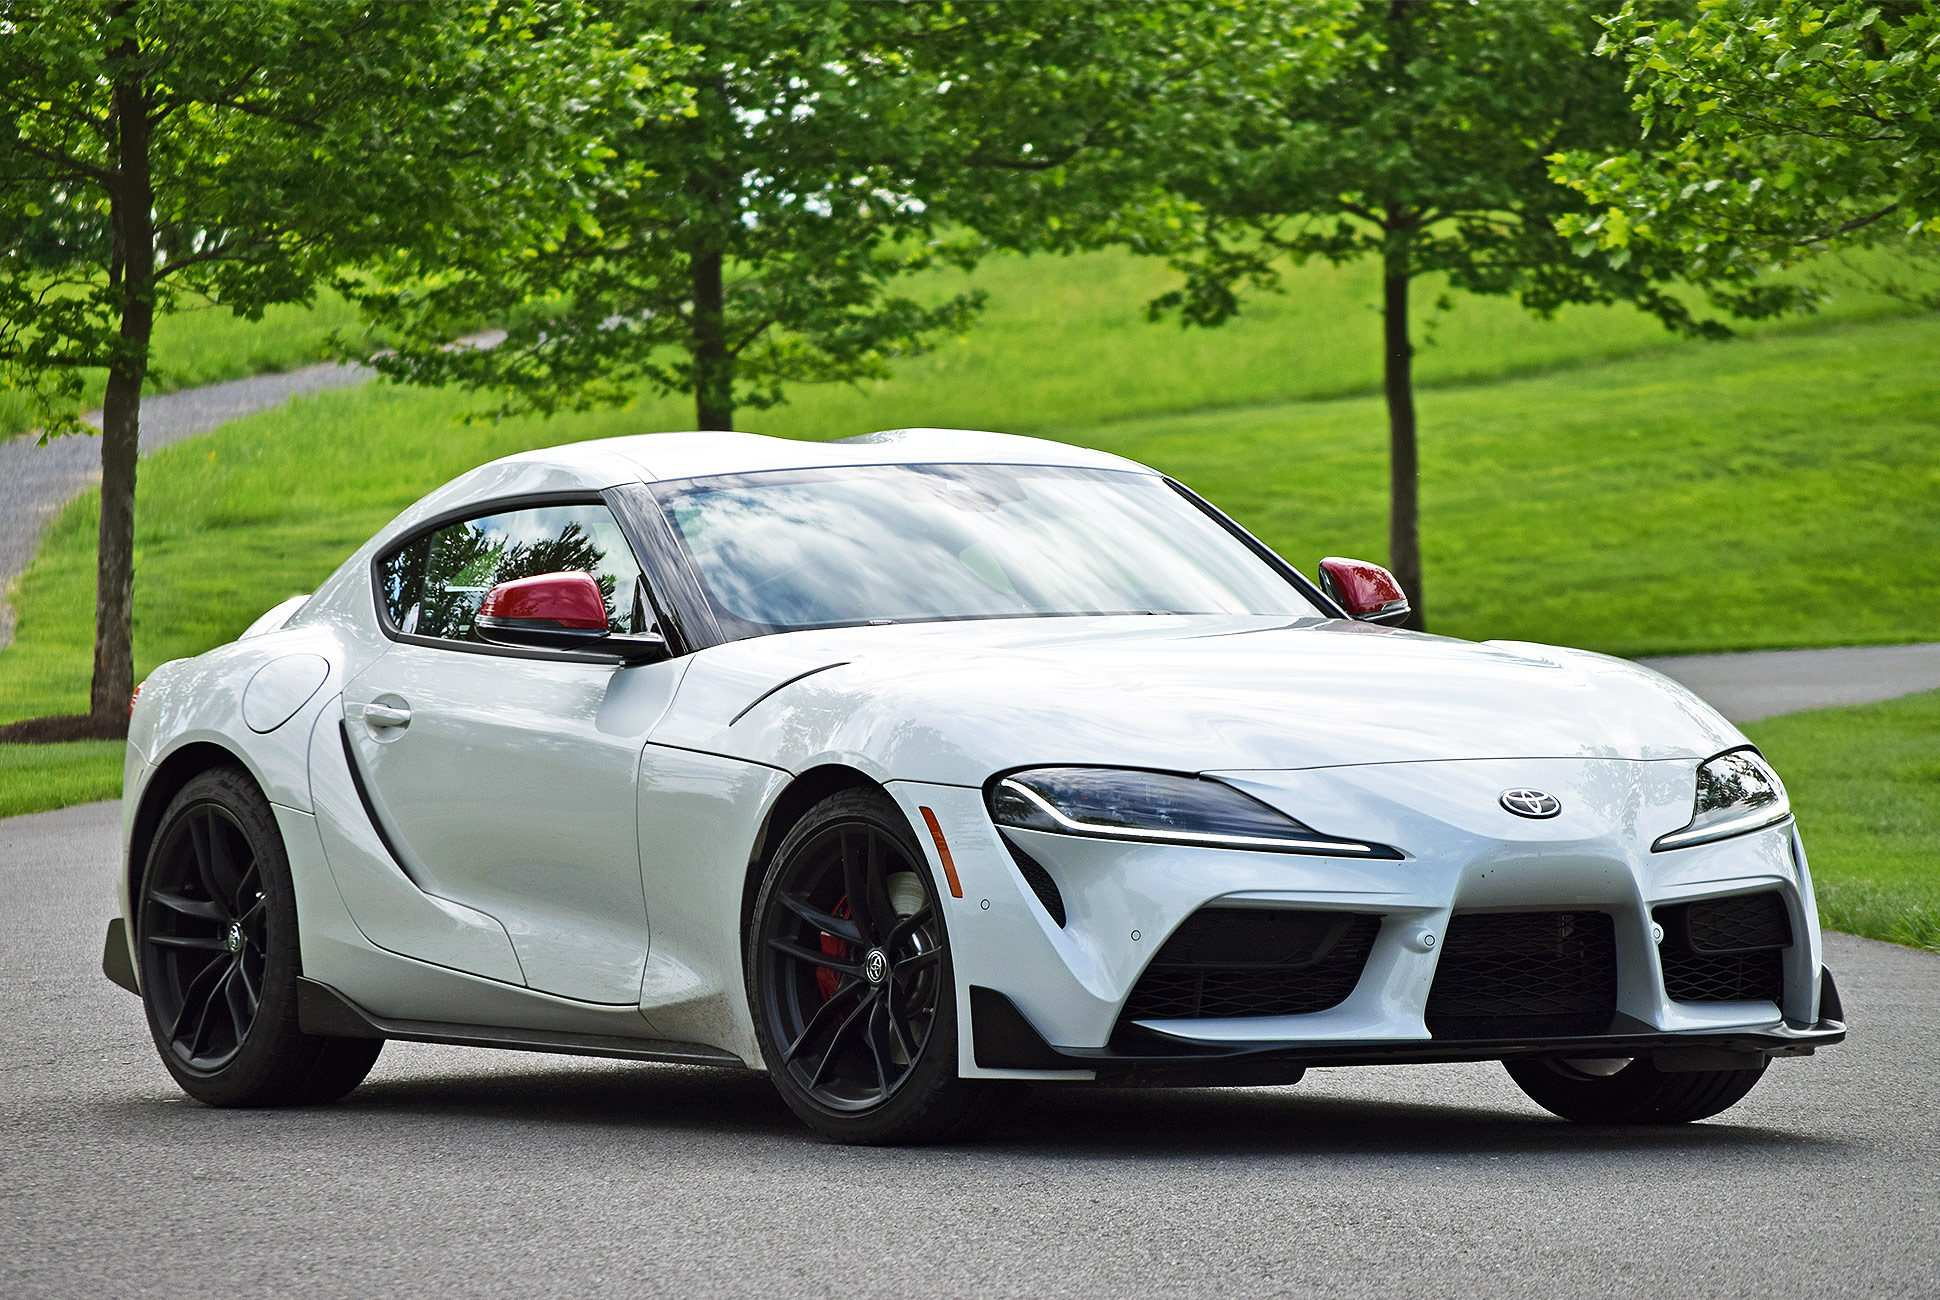 36 The Images Of 2020 Toyota Supra Rumors